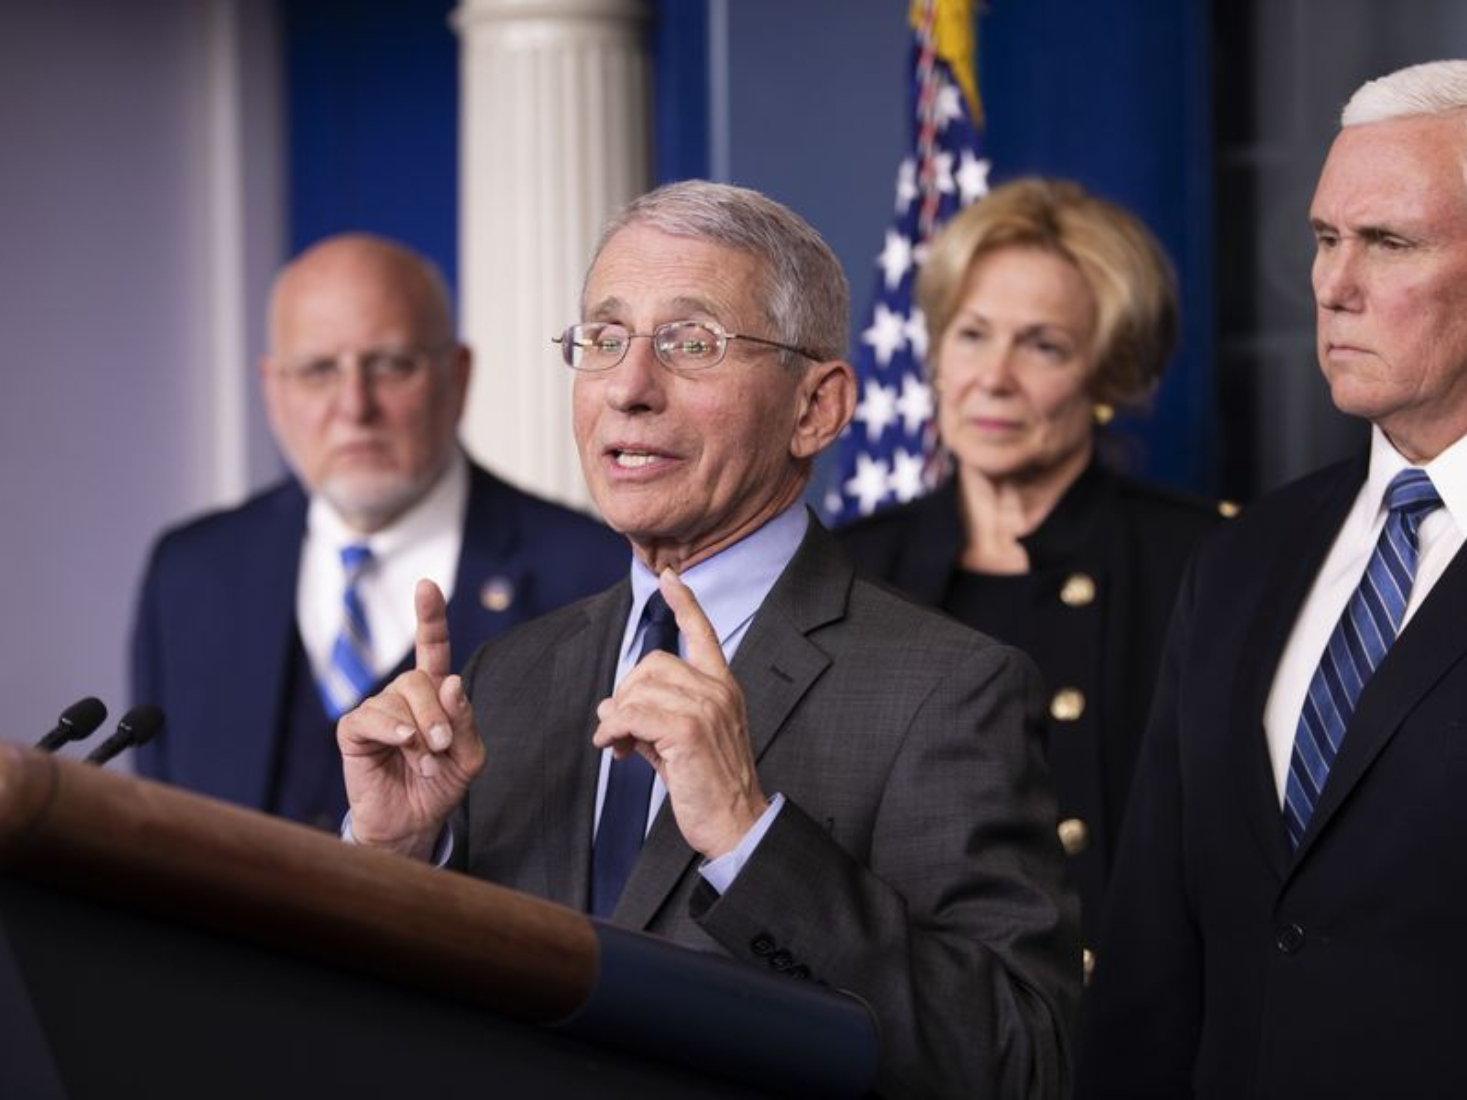 White House 'seeking to discredit' Fauci despite surging COVID-19 cases